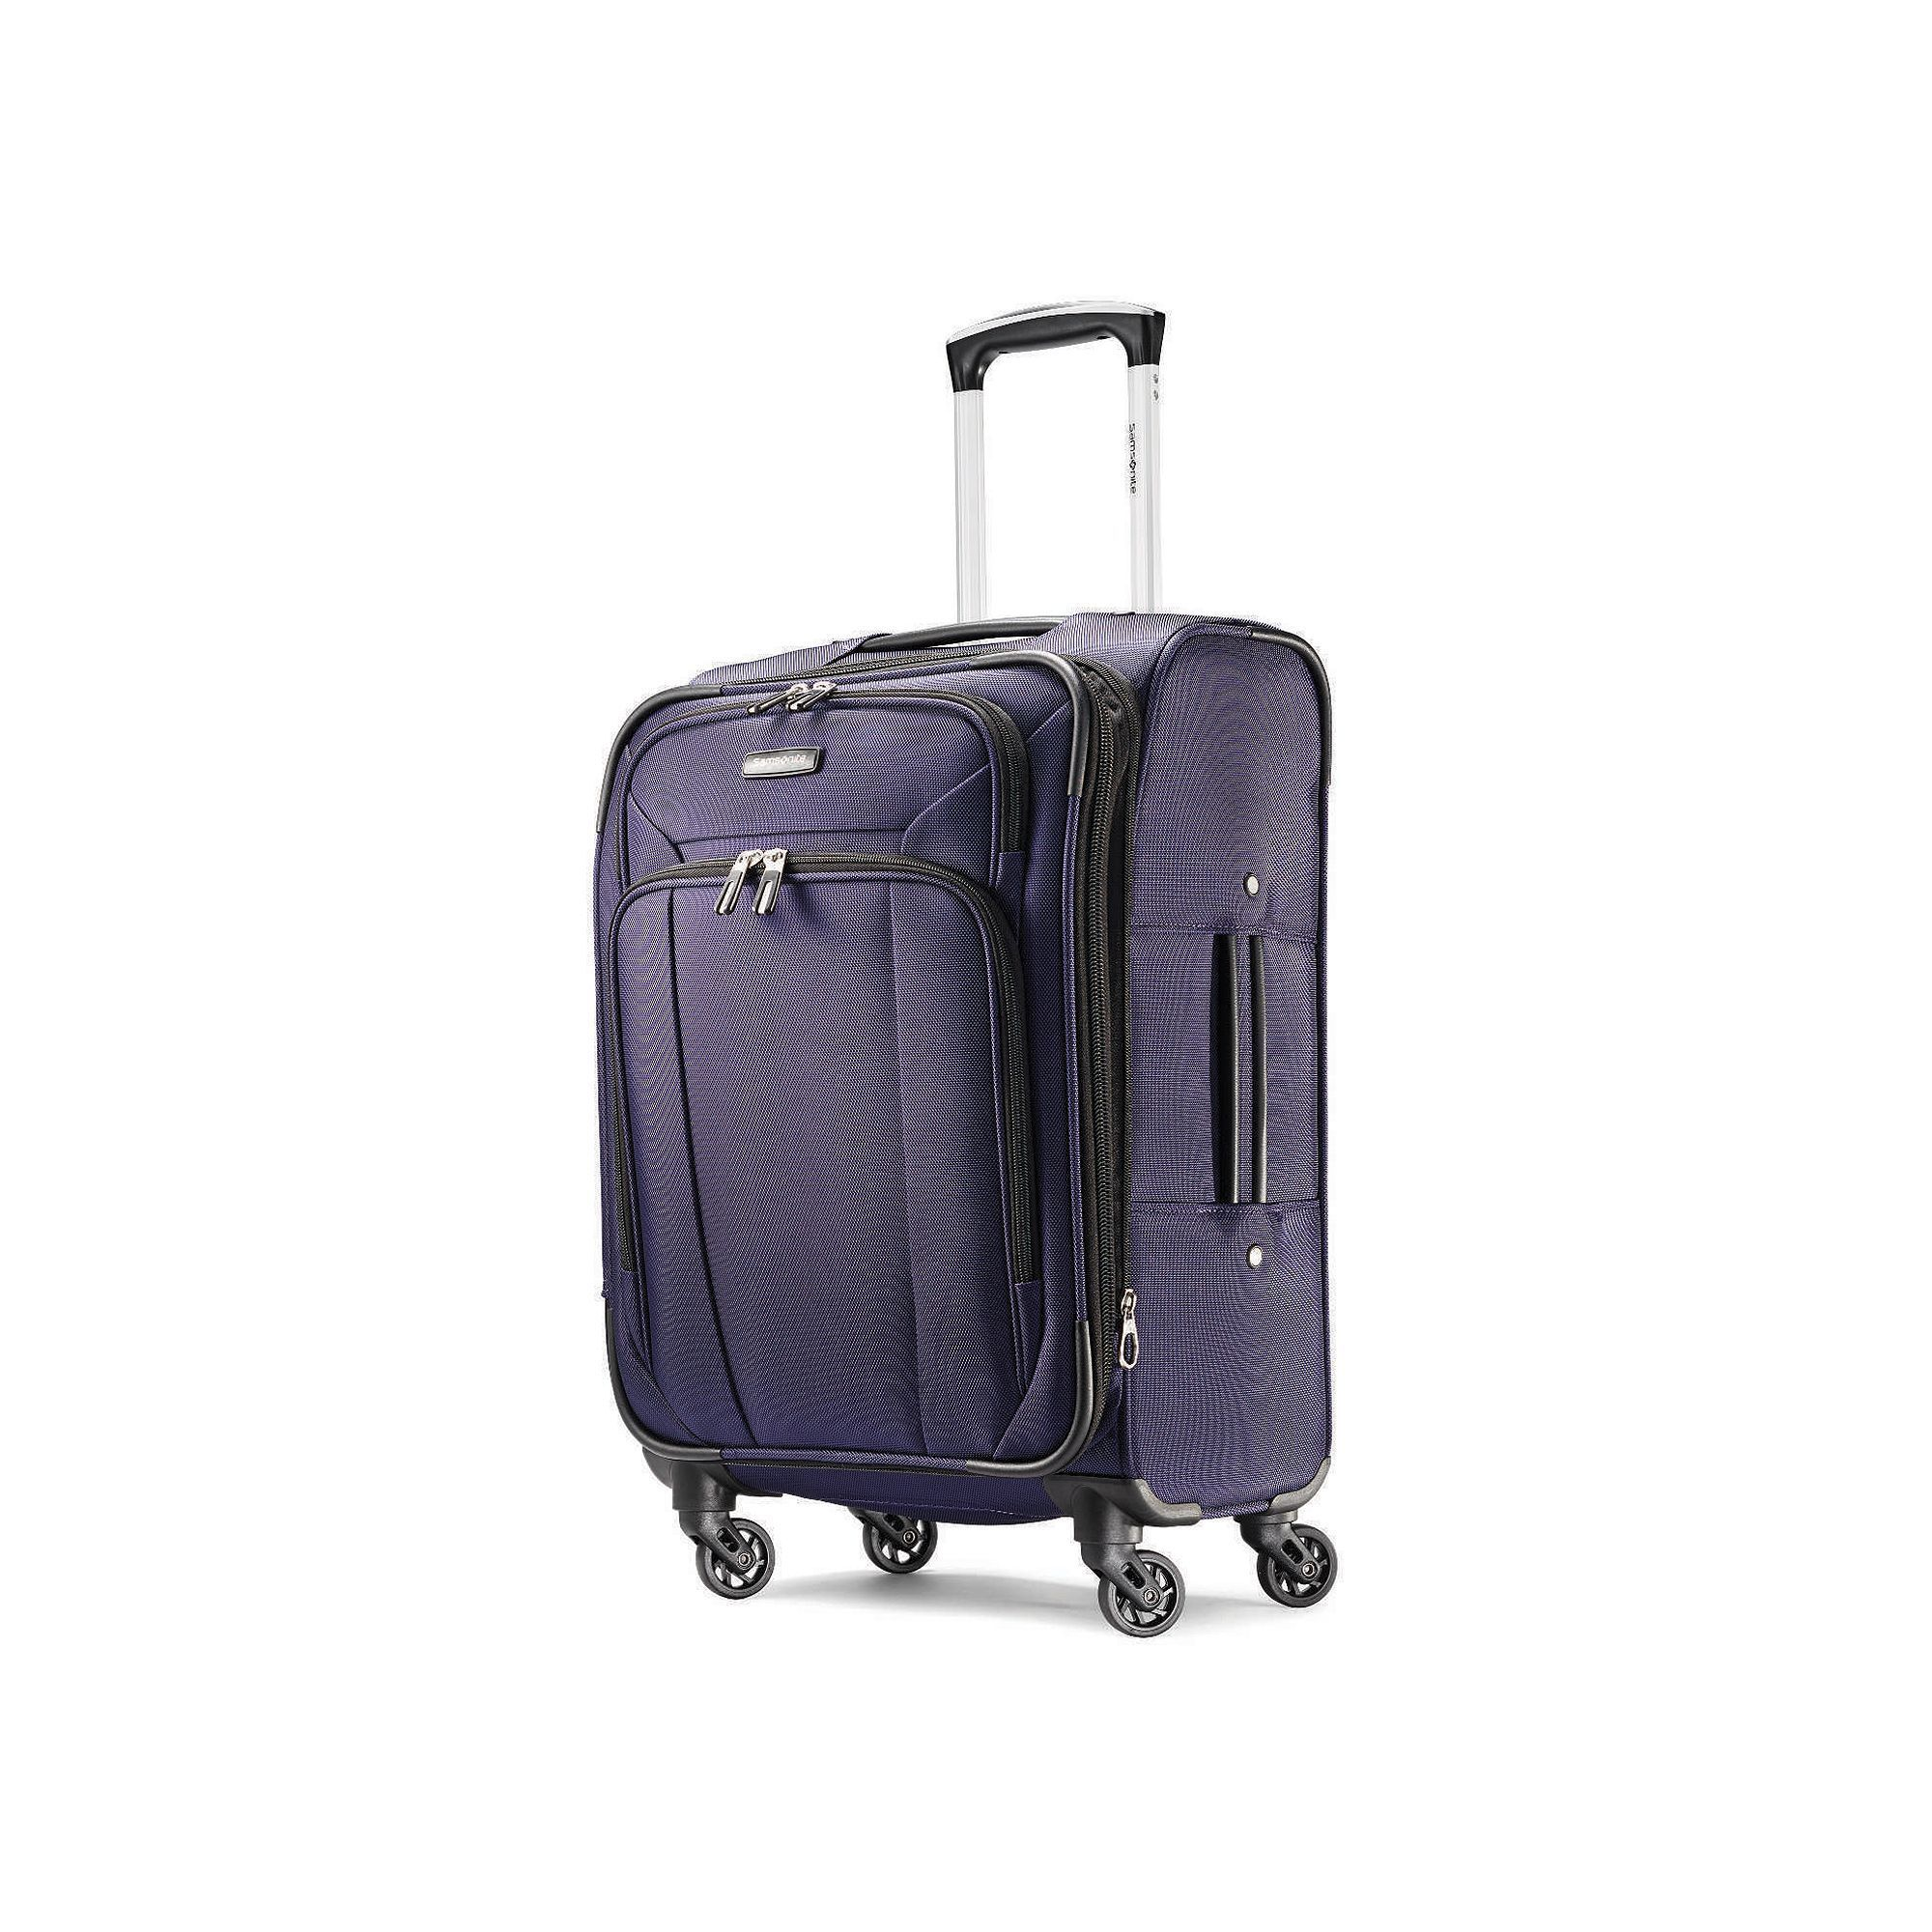 Samsonite Hyperspin 2 Spinner Luggage | Products | Luggage bags